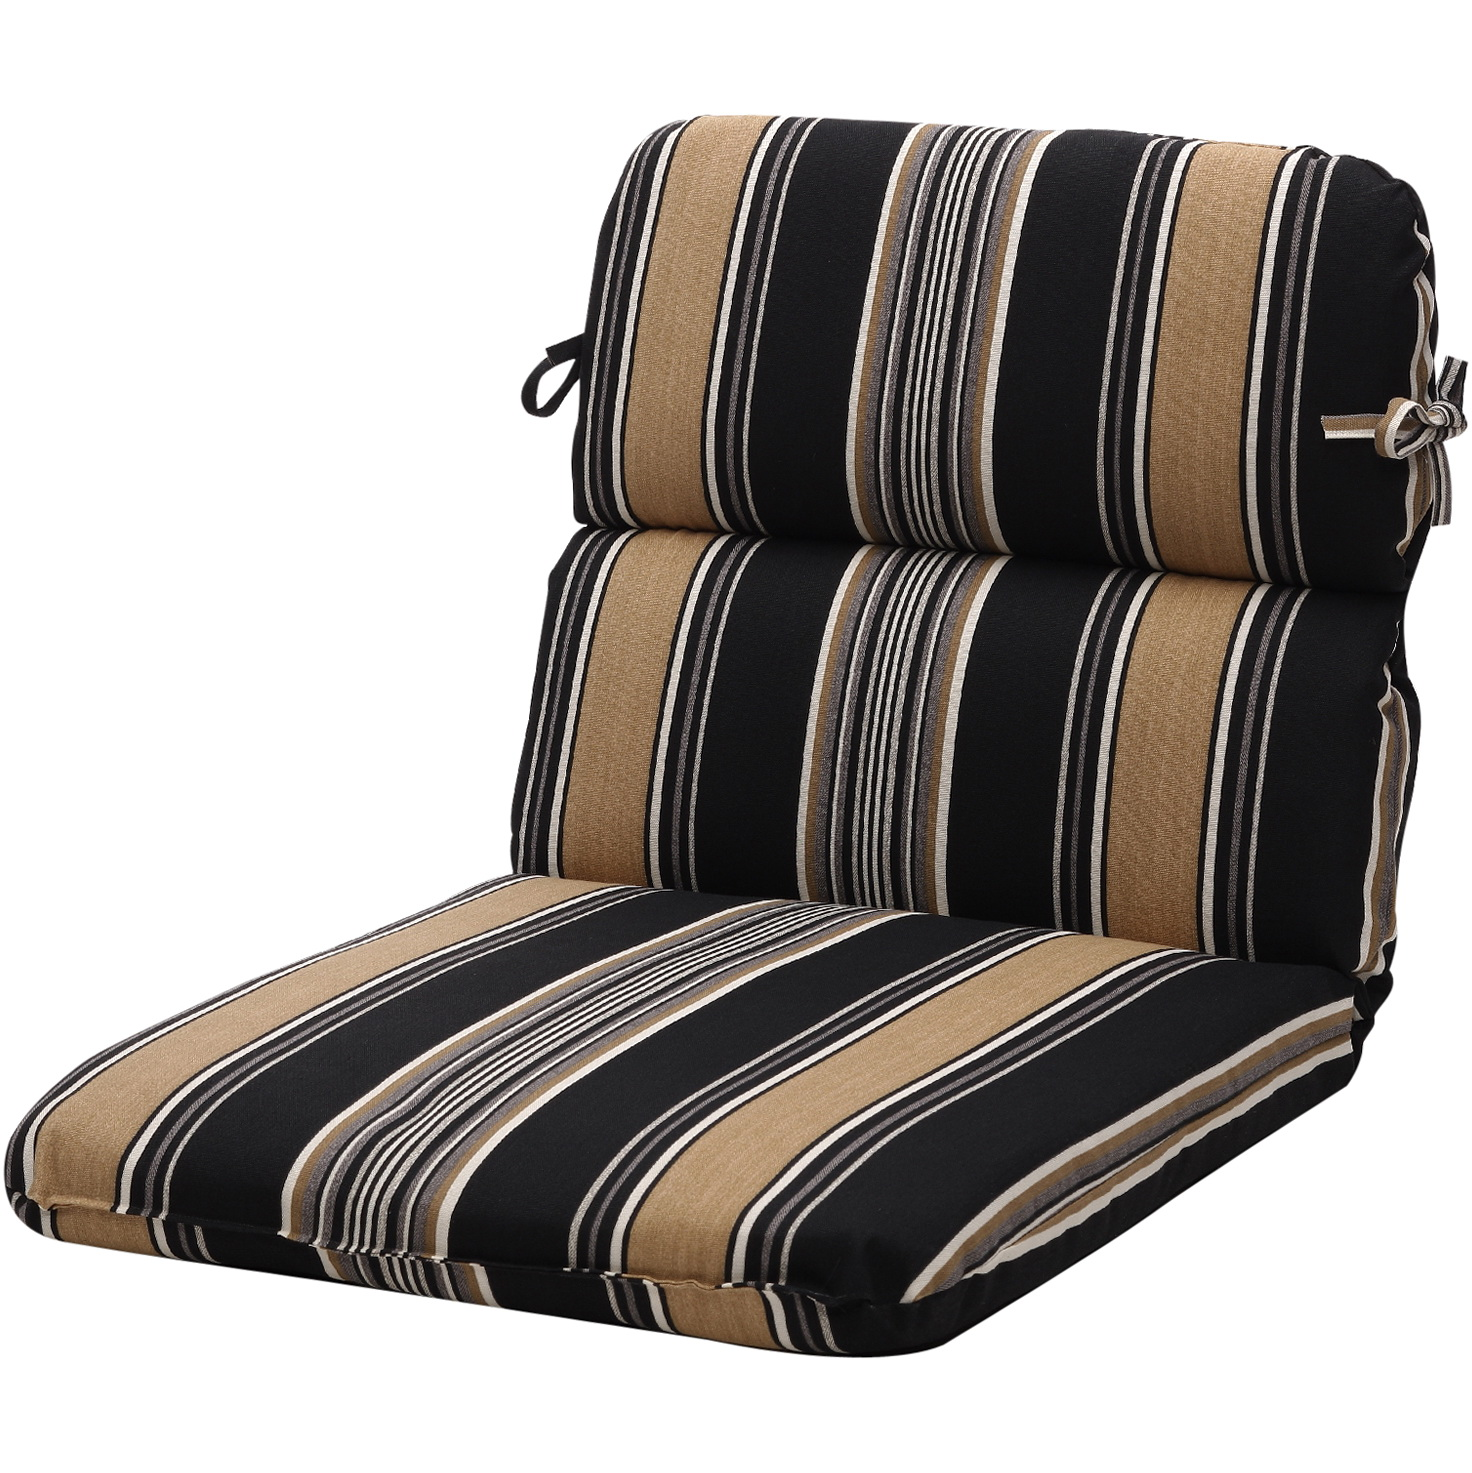 Folding Chair Cushions Walmart